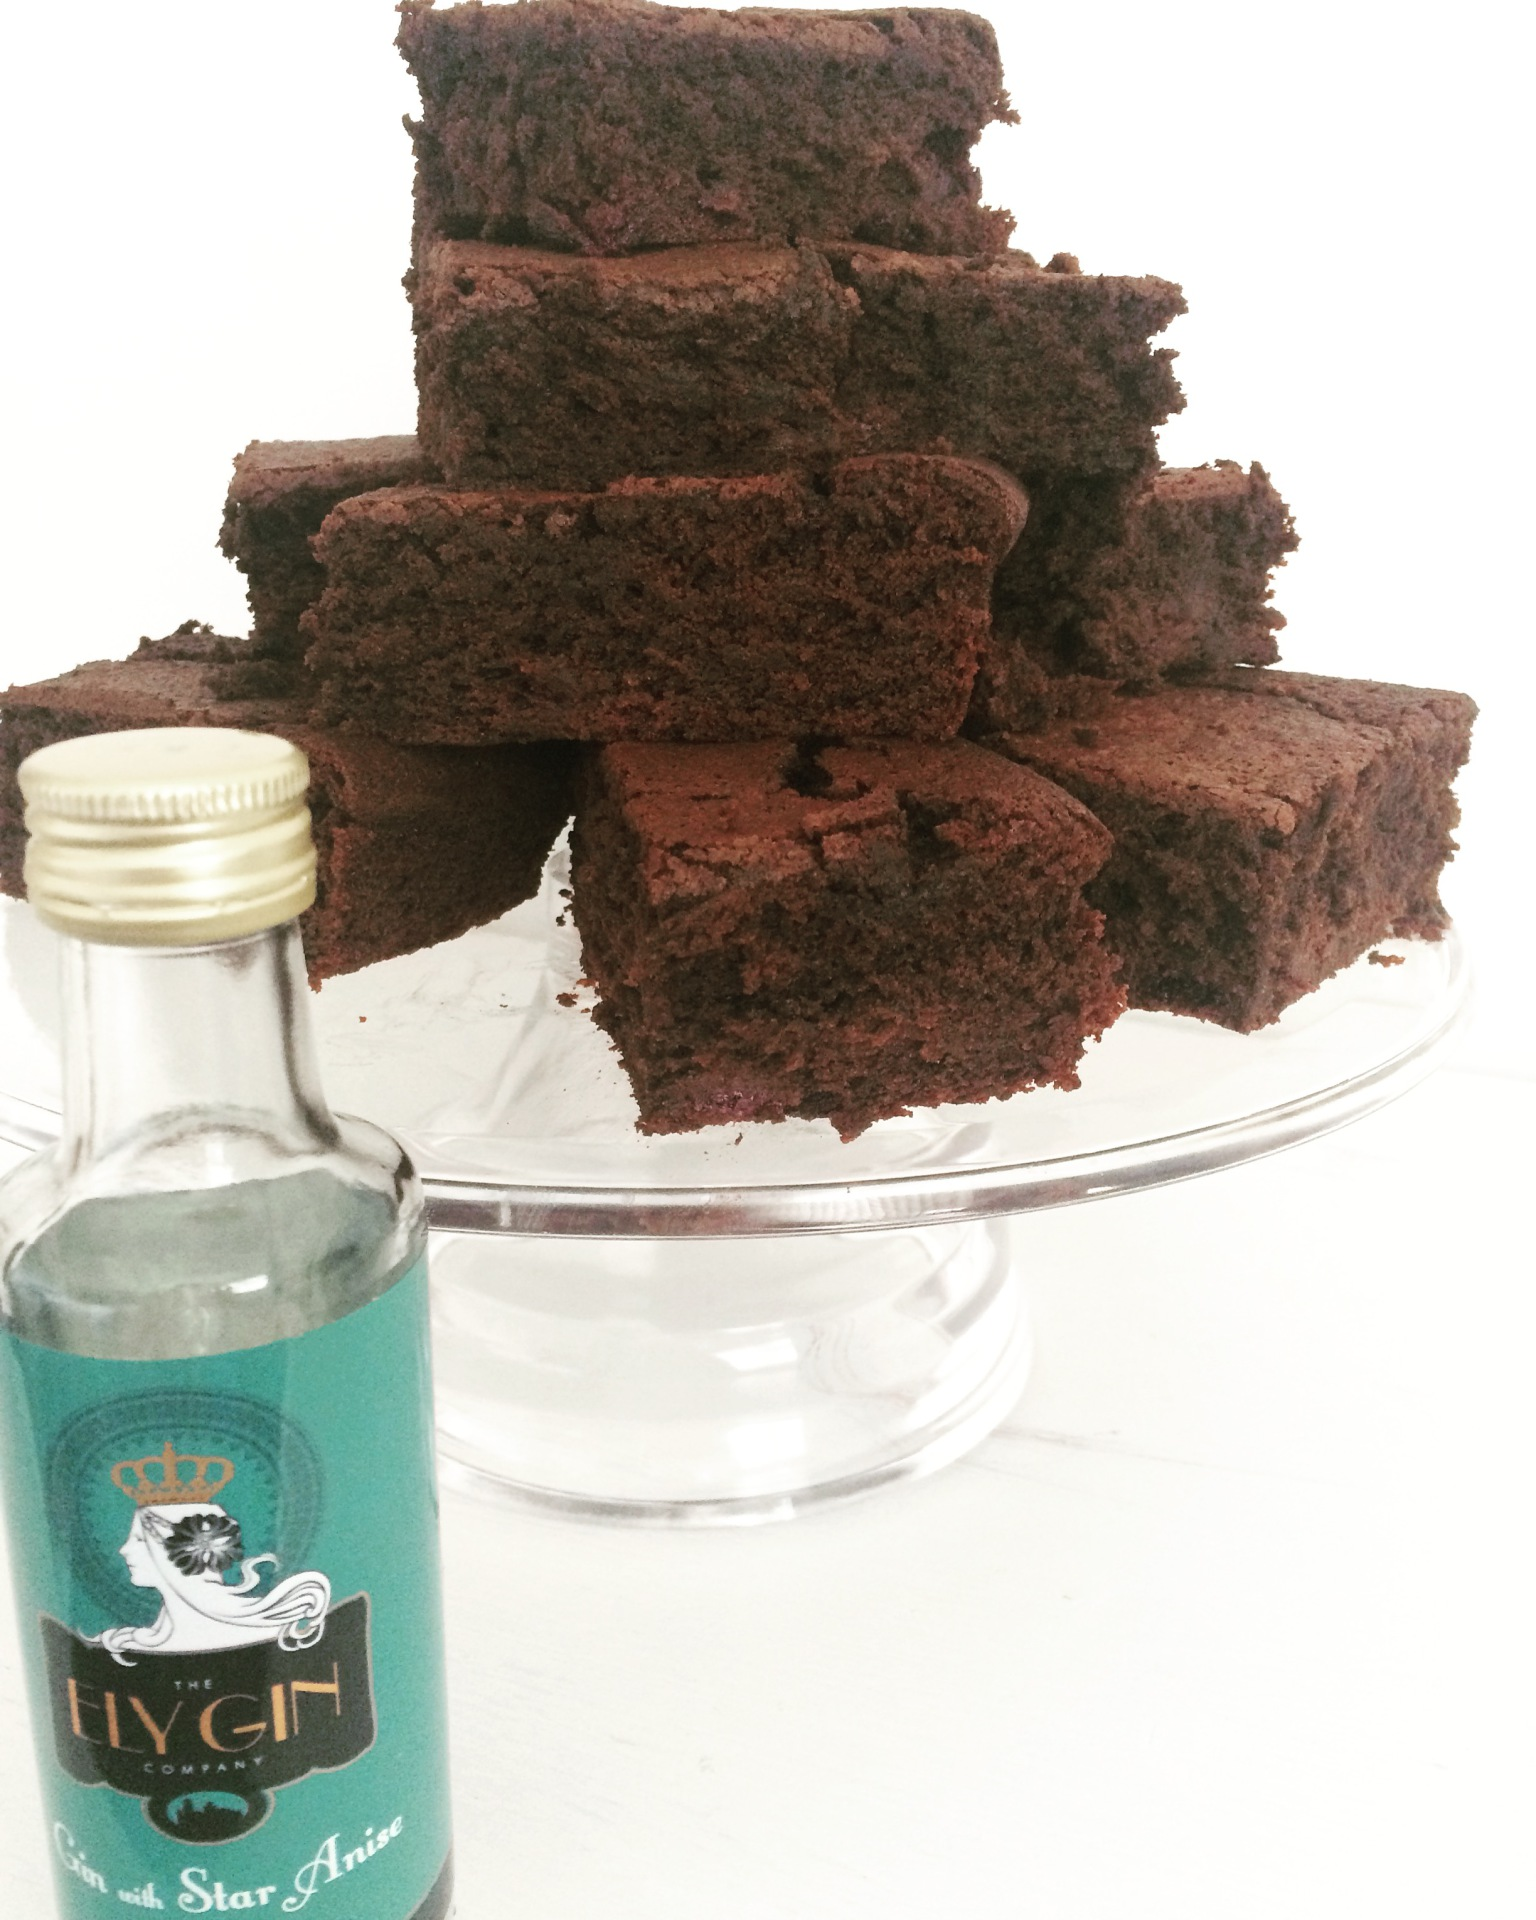 Ely Gin with Star Anise, Molasses and Blackcurrant Brownies